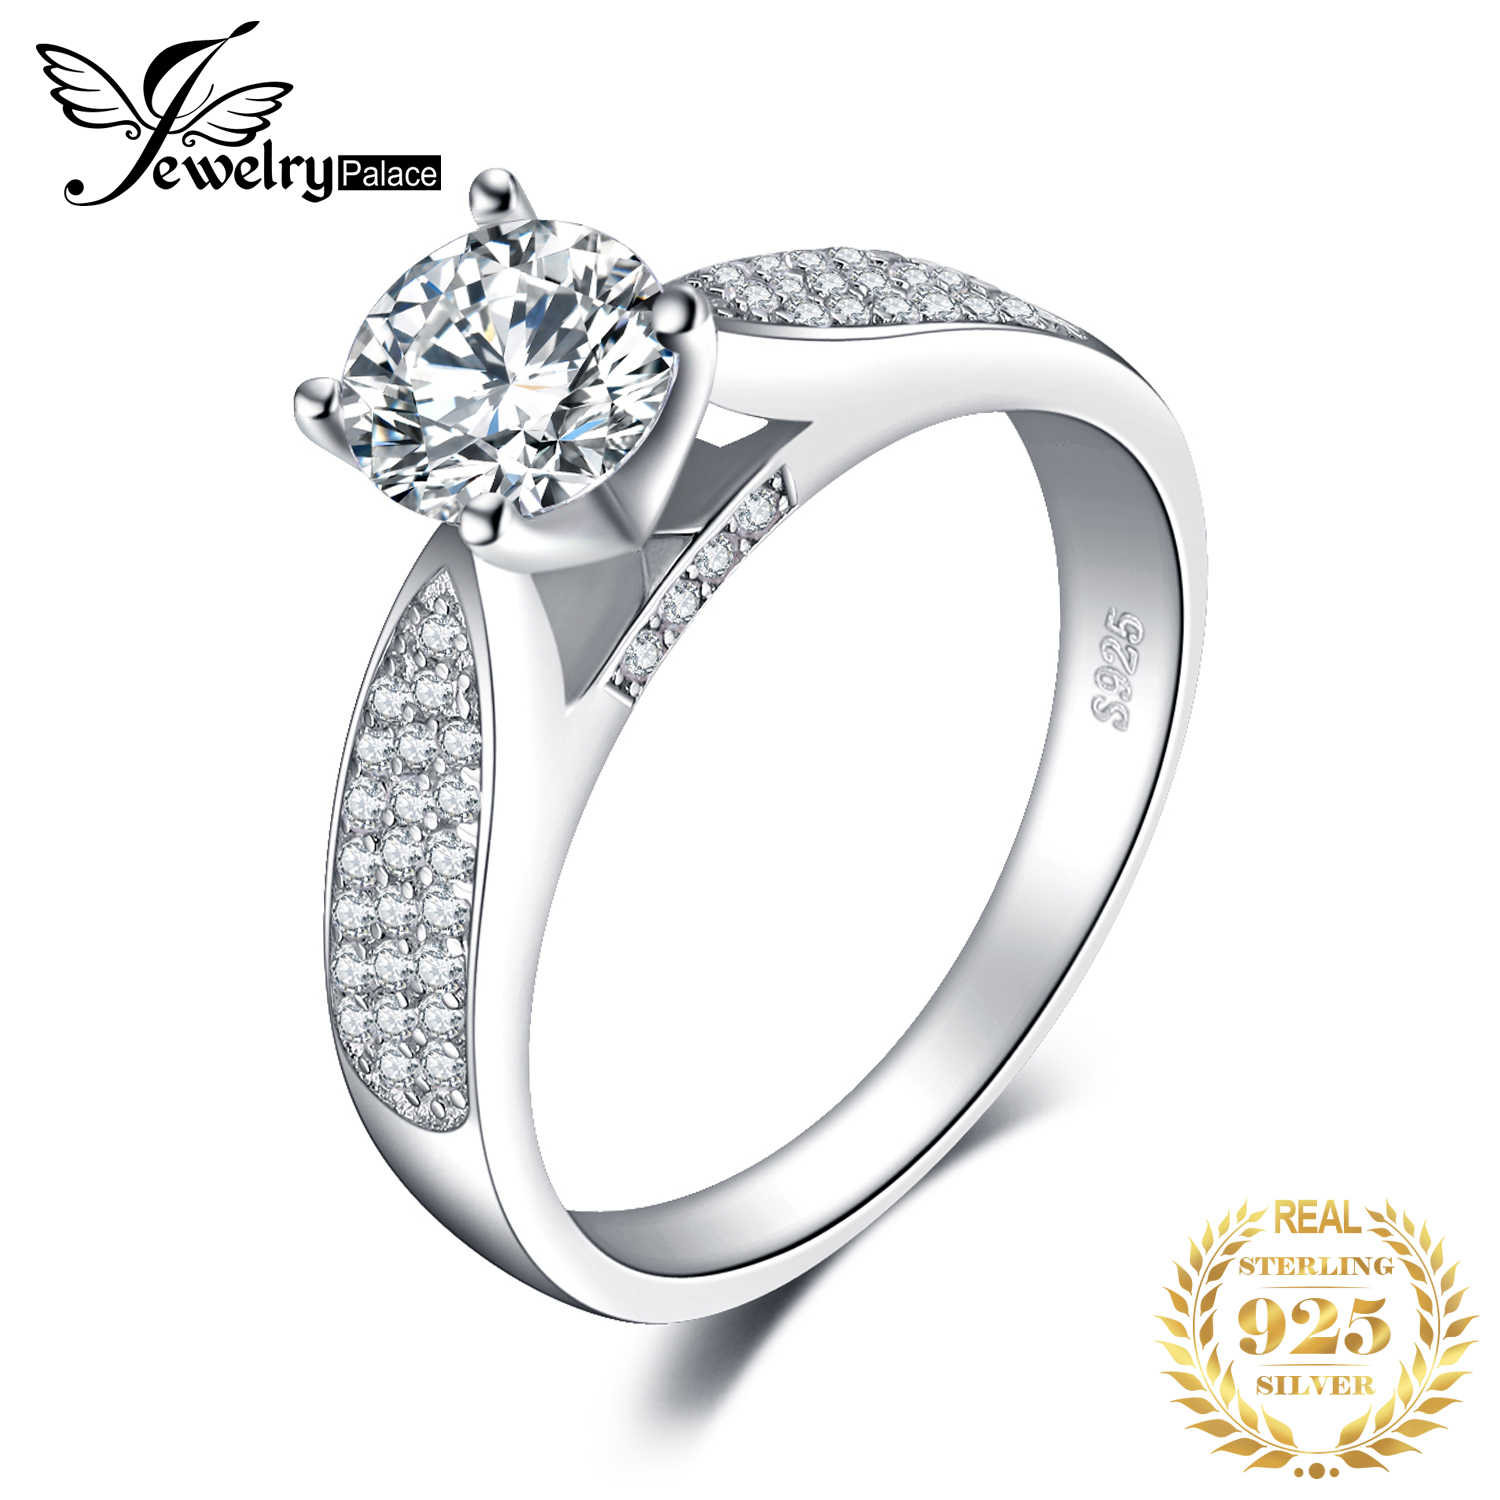 JewelryPalace Solitaire Cubic Zirconia Engagement Rings Authentic 925 Sterling Silver Promise Rings Anniversary Gifts for Women